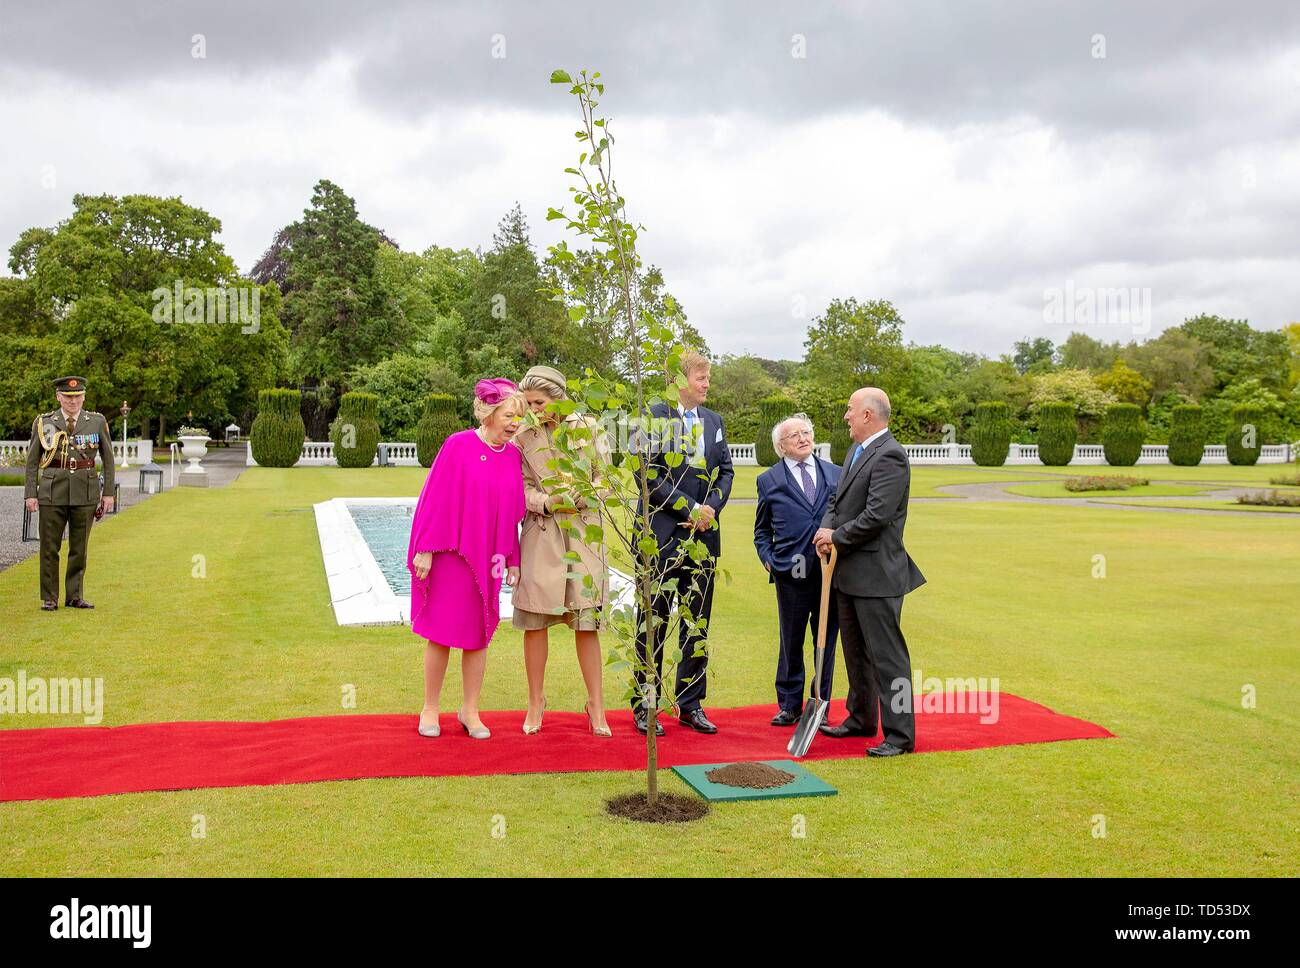 Dublin, Ireland. 12th June, 2019. King Willem-Alexander and Queen Maxima of The Netherlands received by President Higgins and his wife Sabina Higgins at A?ras an Uachtara?in, the Presidential Palace in Dublin, on June 12, 2019, planting a tree at the 1st of a 3 days State-visit to Ireland Photo : Albert Nieboer/ Netherlands OUT/Point de Vue OUT | Credit: dpa/Alamy Live News - Stock Image